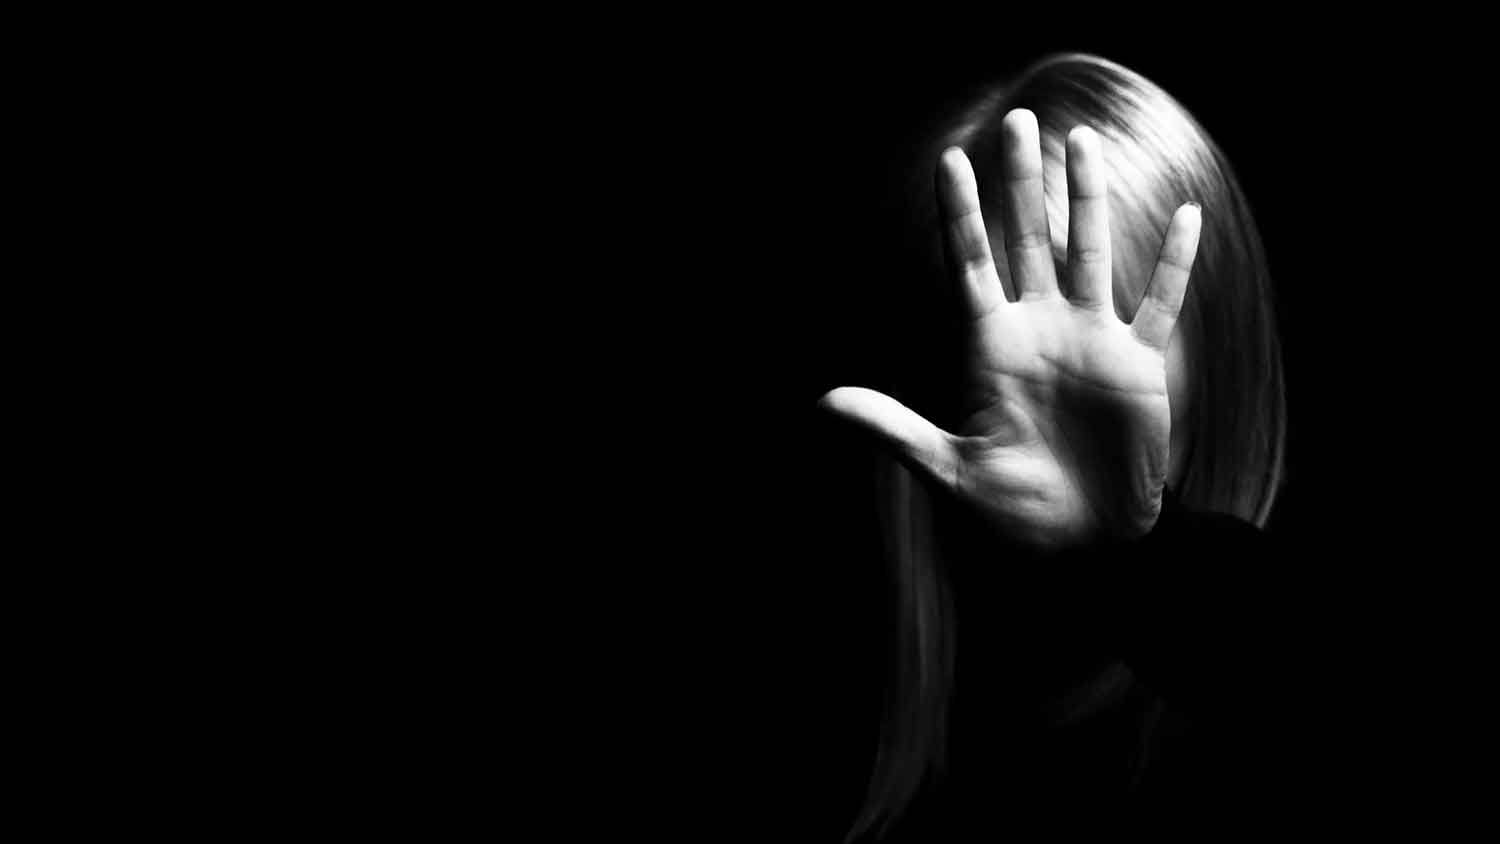 Black and white image of a woman holding her hand toward the camera to obscure her face